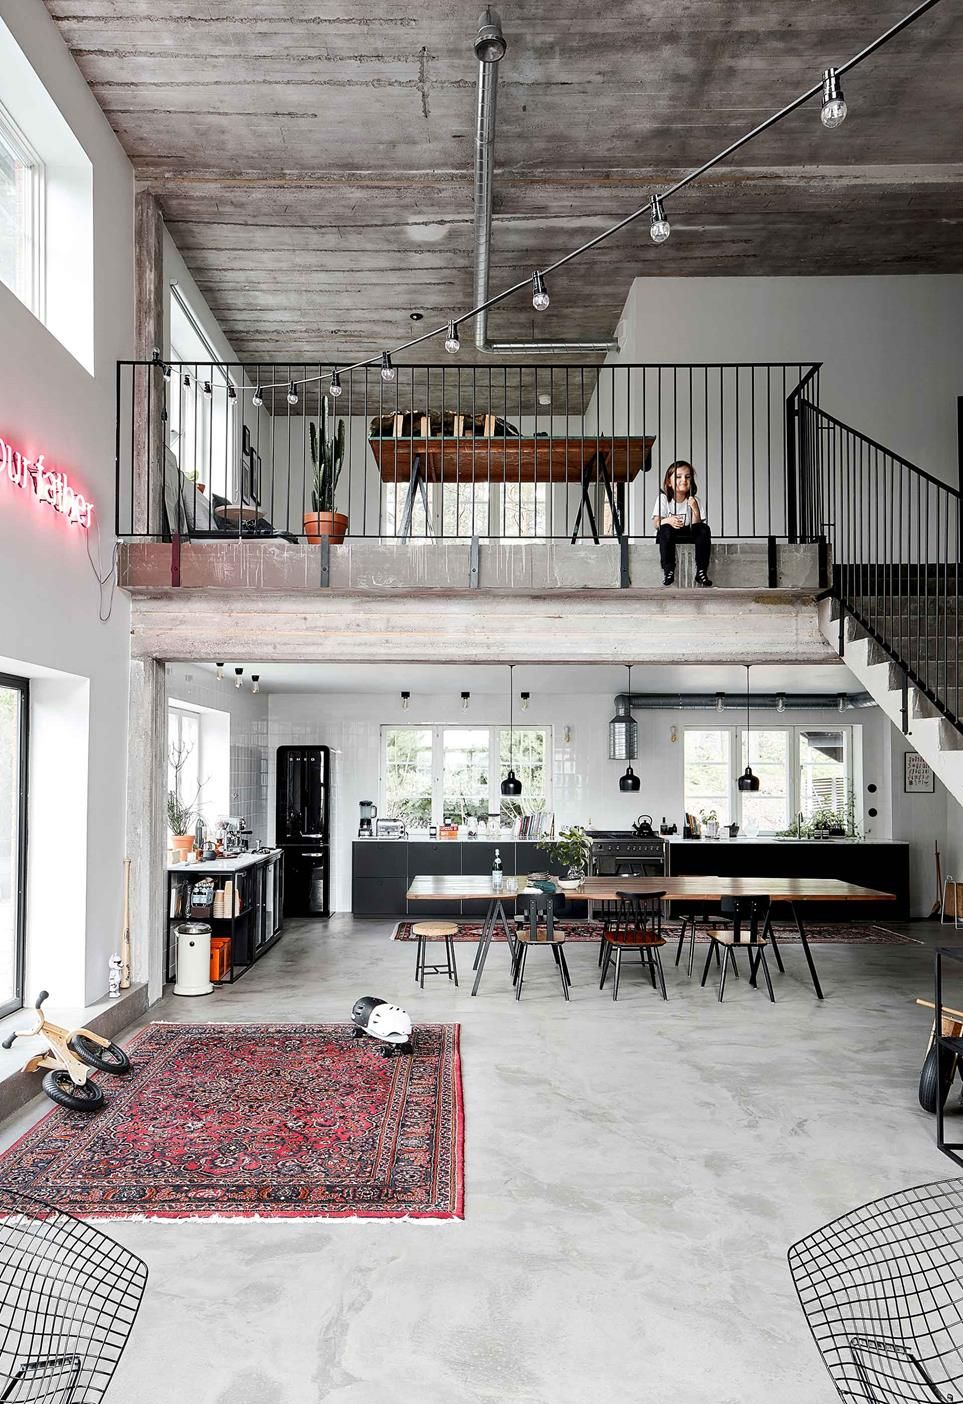 A Ski Factory S Industrial Chic Loft Home Conversion Industrial Loft Design Industrial Home Design Loft House